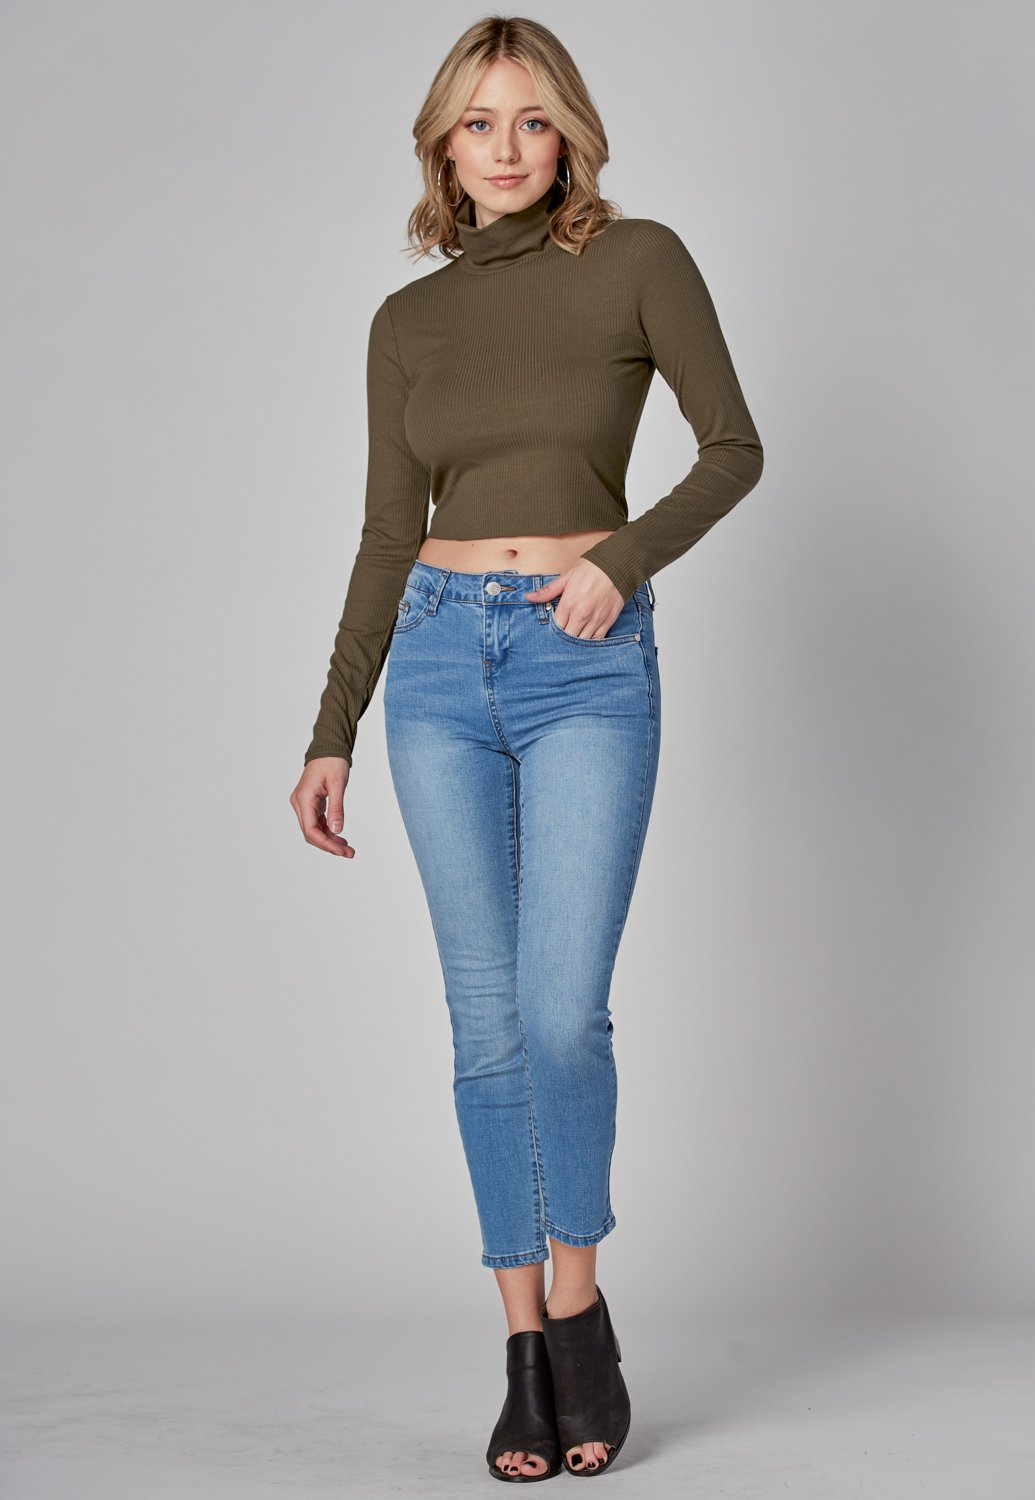 Turtle Neck Crop Knit Top